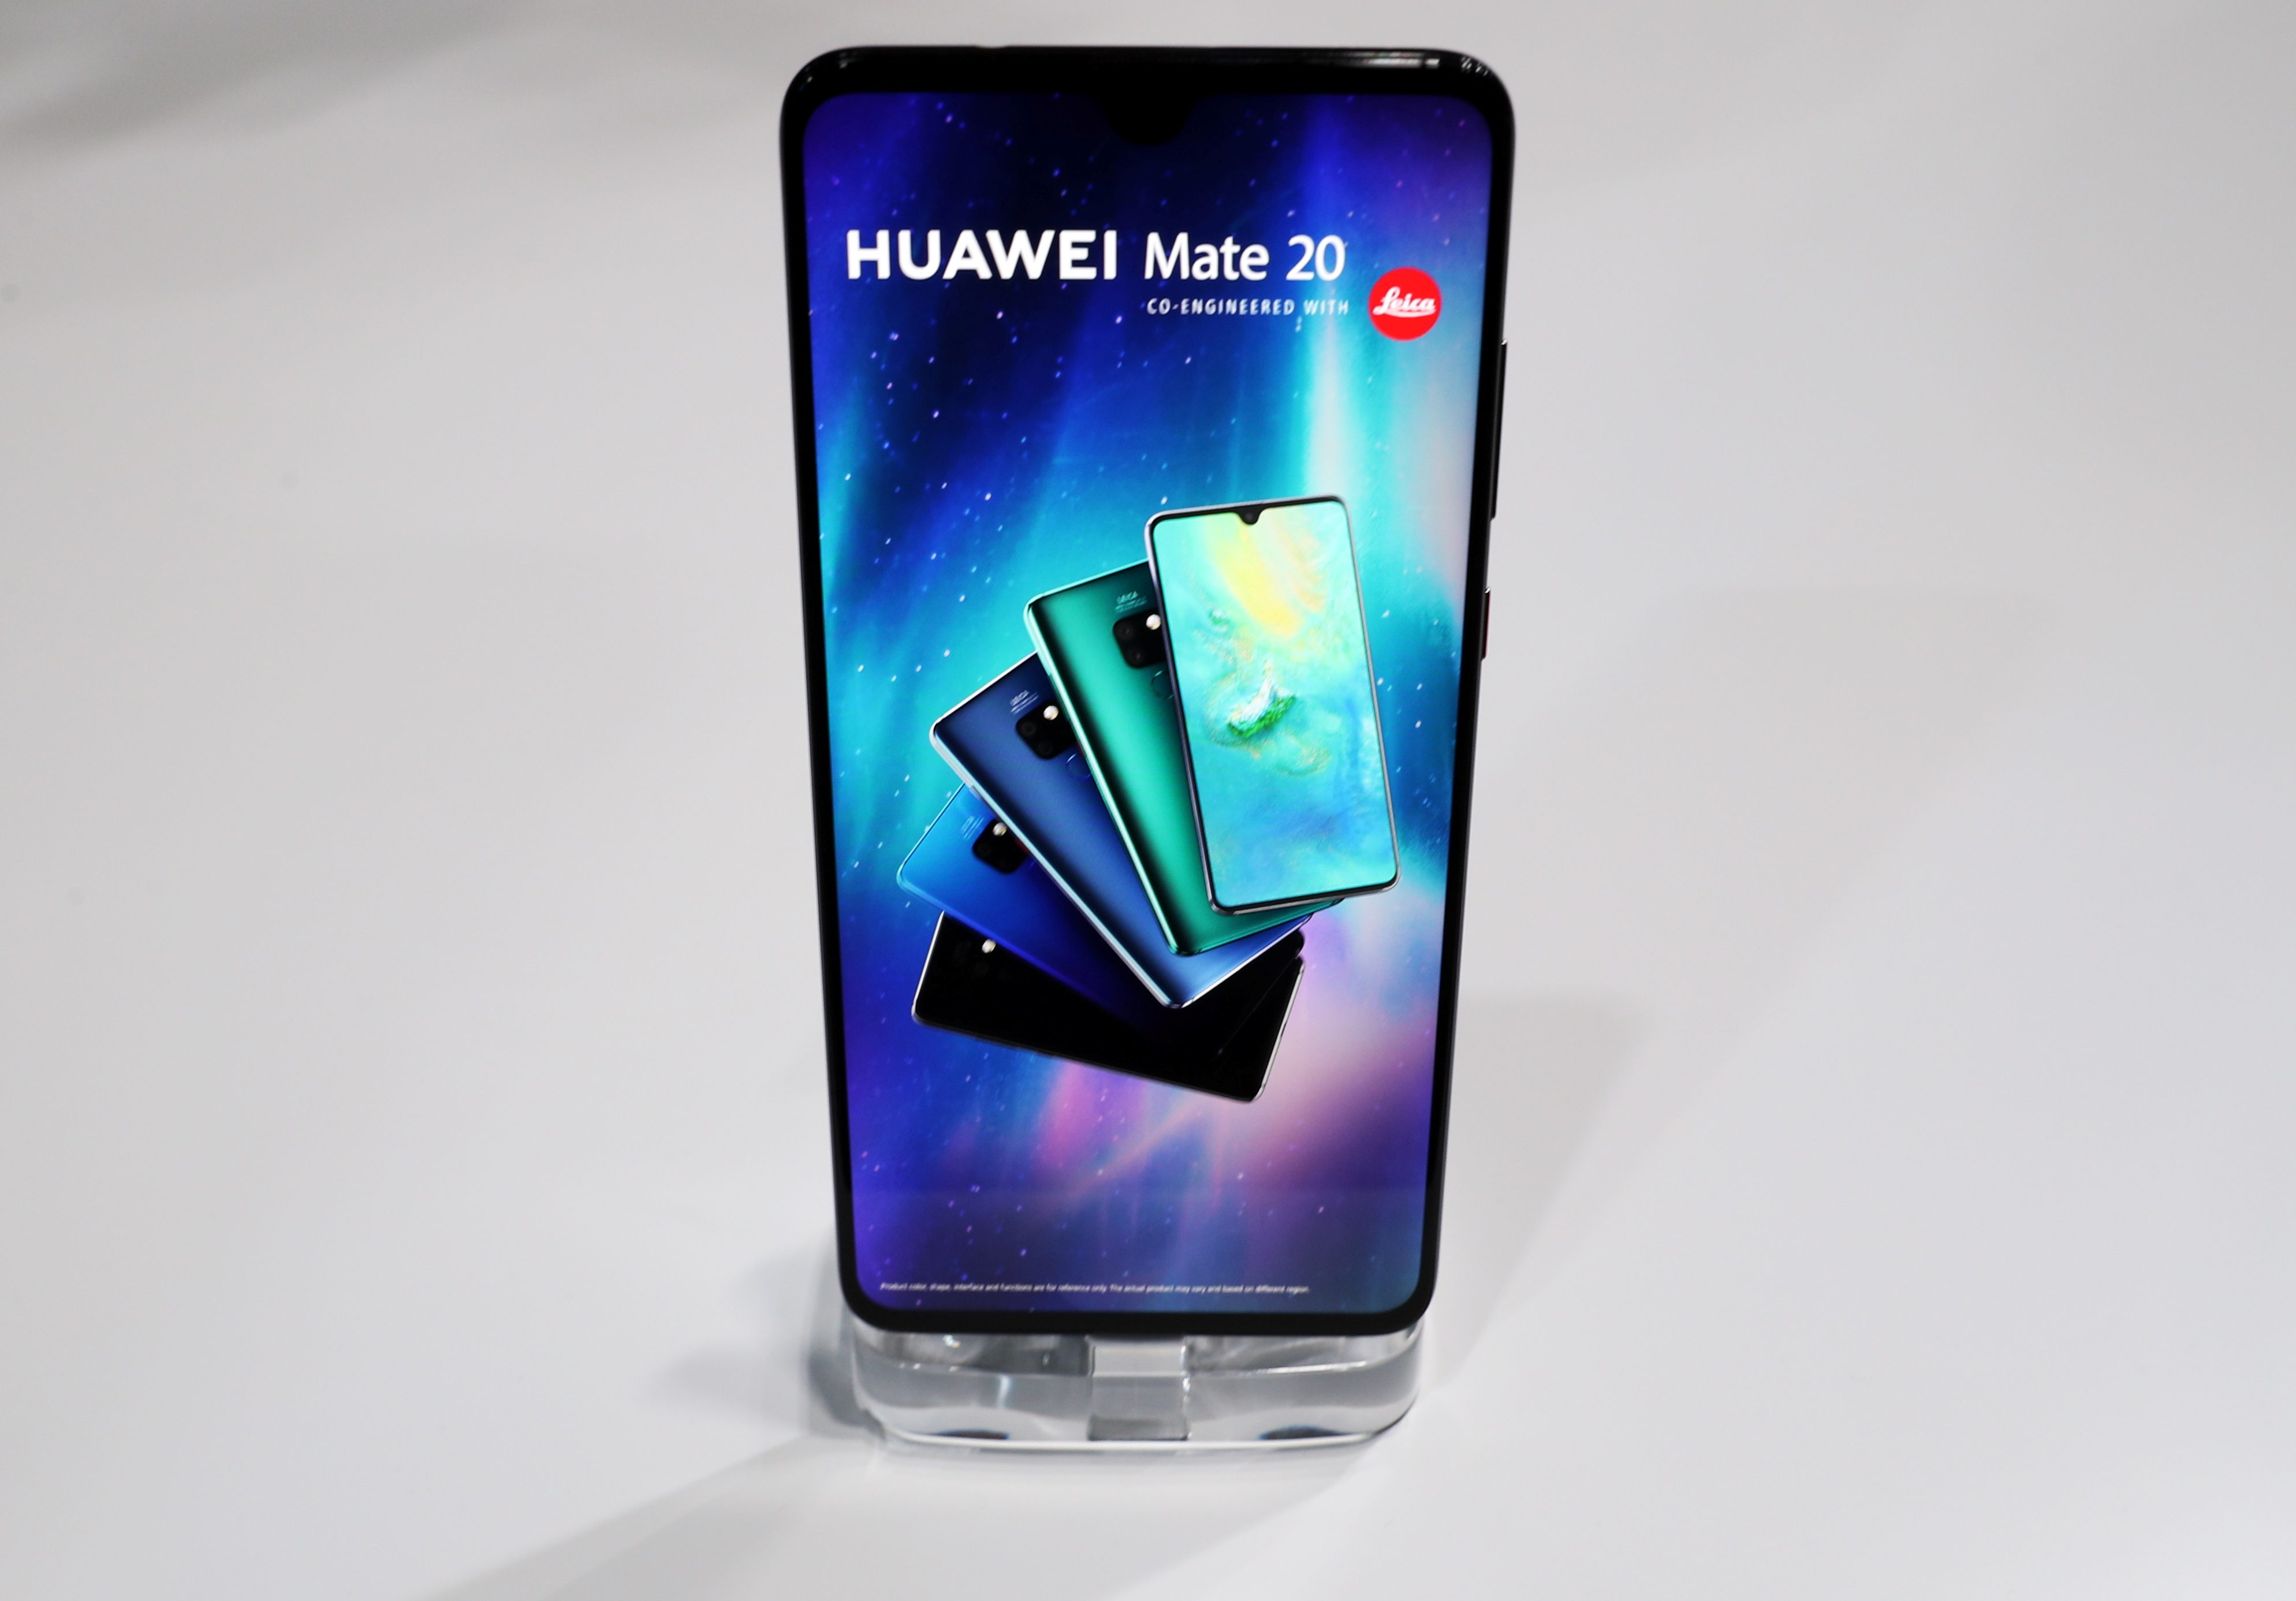 Huawei poses national security risks, says United Kingdom watchdog